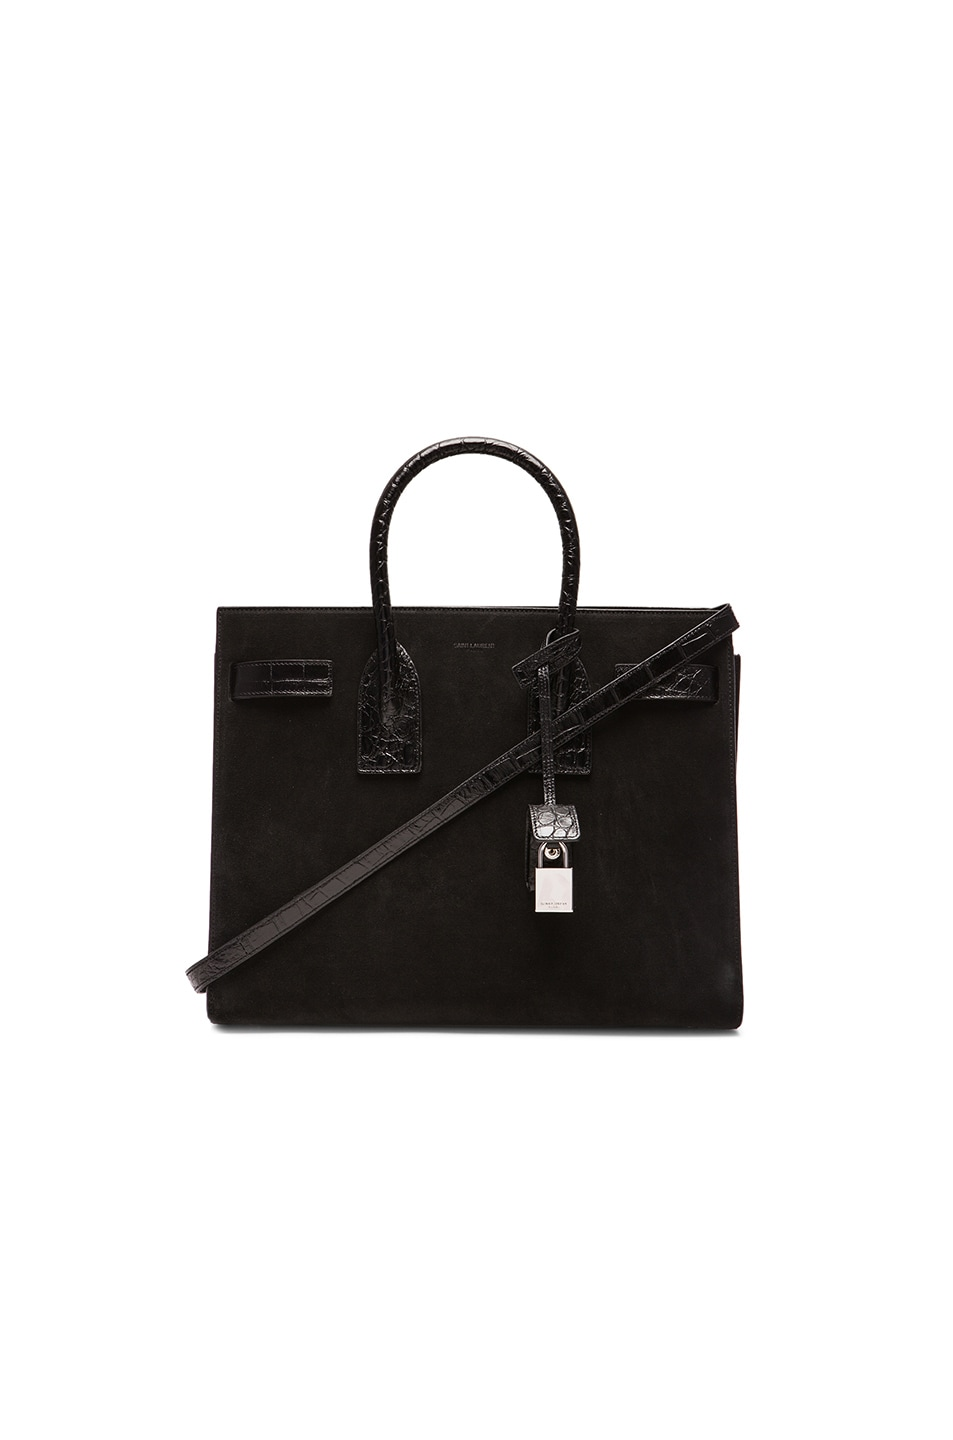 Image 1 of Saint Laurent Small Suede & Croc Embossed Sac De Jour in Black